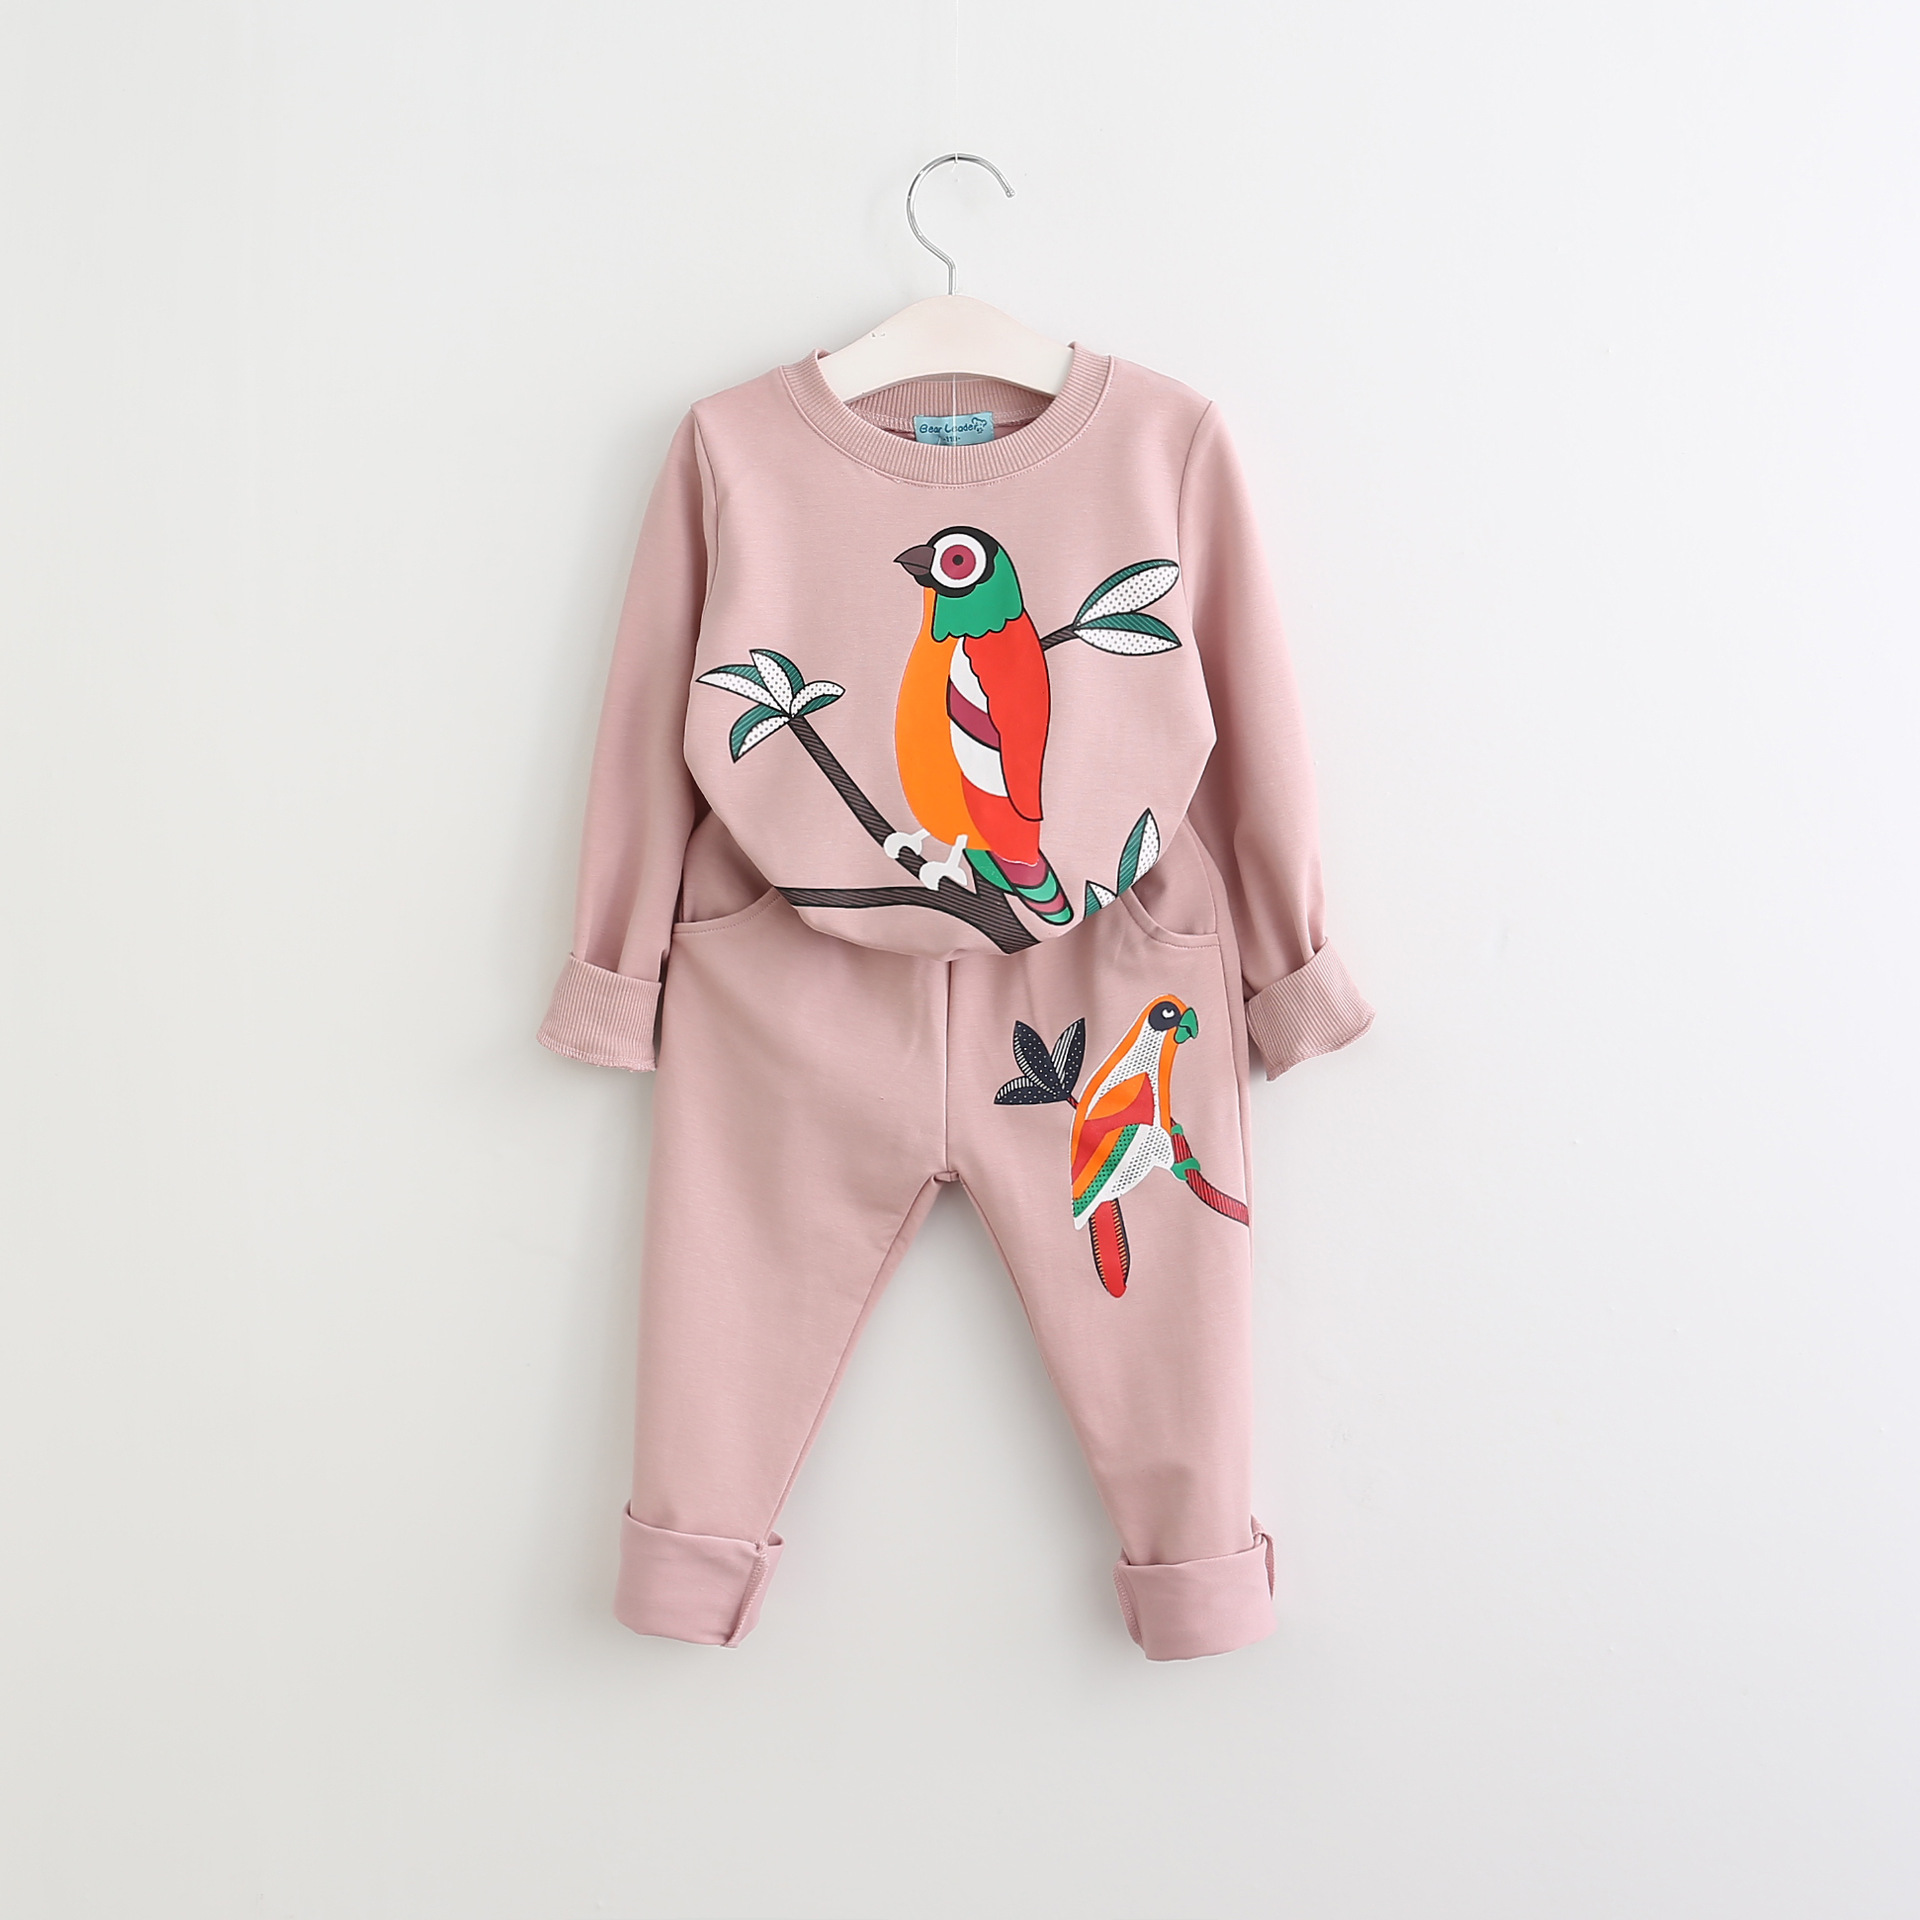 Toddler Girl 2 Pieces Print Colorful Birds Long Sleeve Sweatshirt and Jogger Pants Clothes Set Outfit